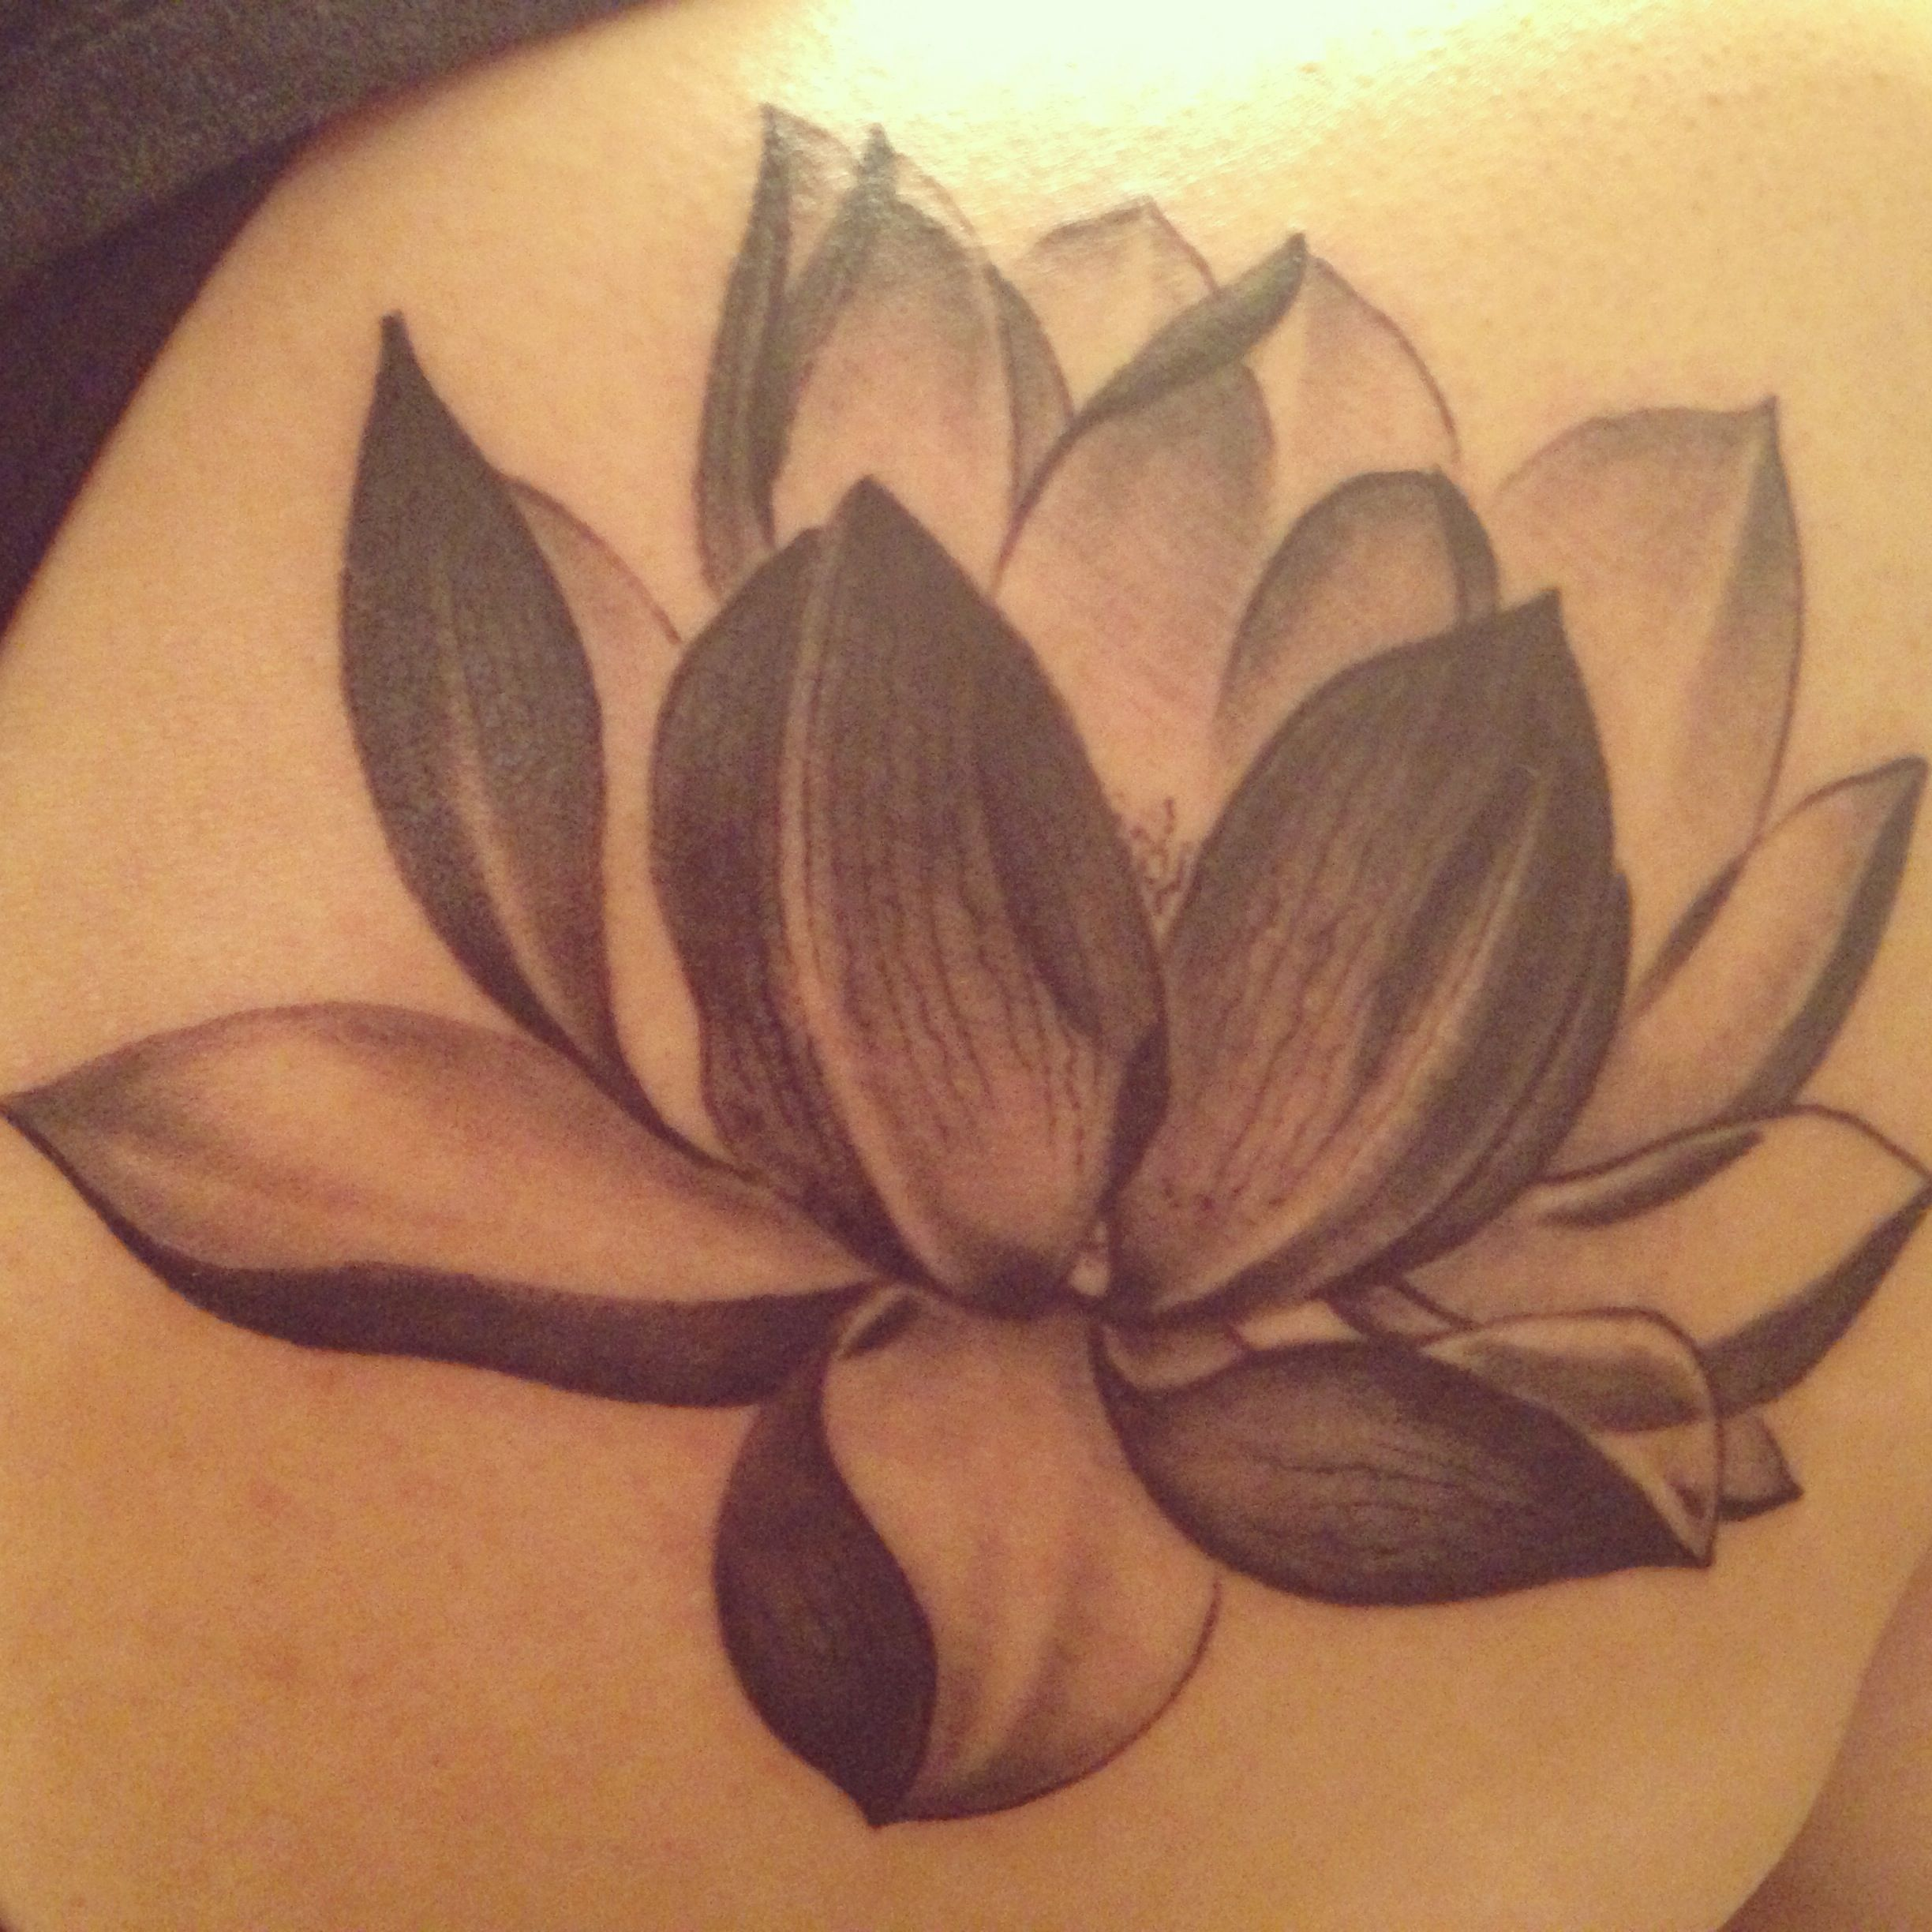 Lotus flower tattoo - Another Angle Of My Lotus Tattoo